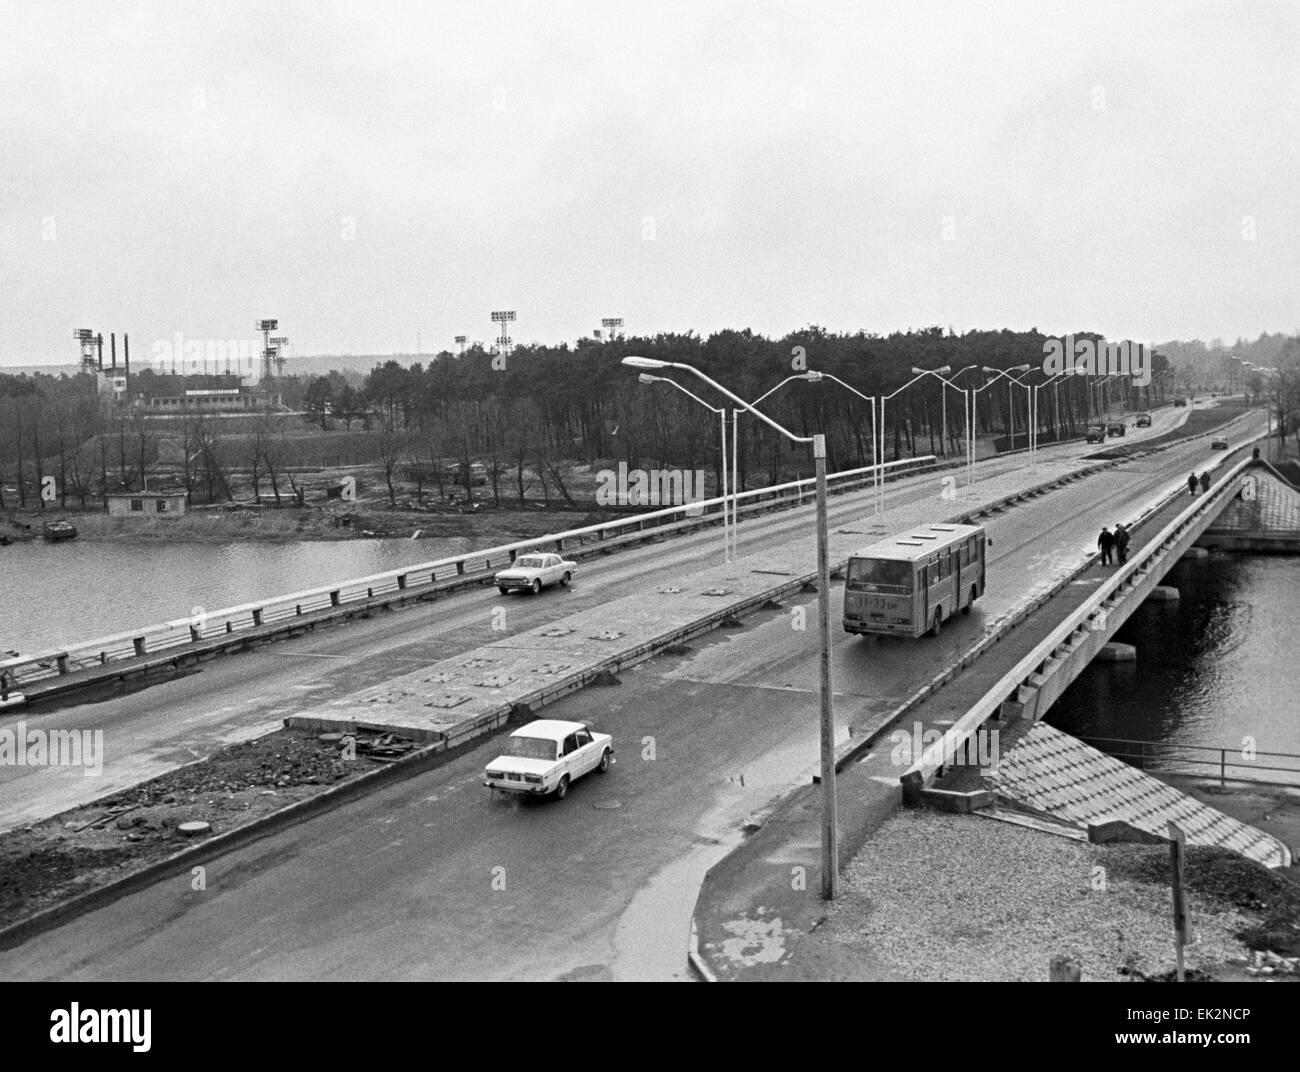 Constructed The Bridge Black and White Stock Photos & Images - Alamy